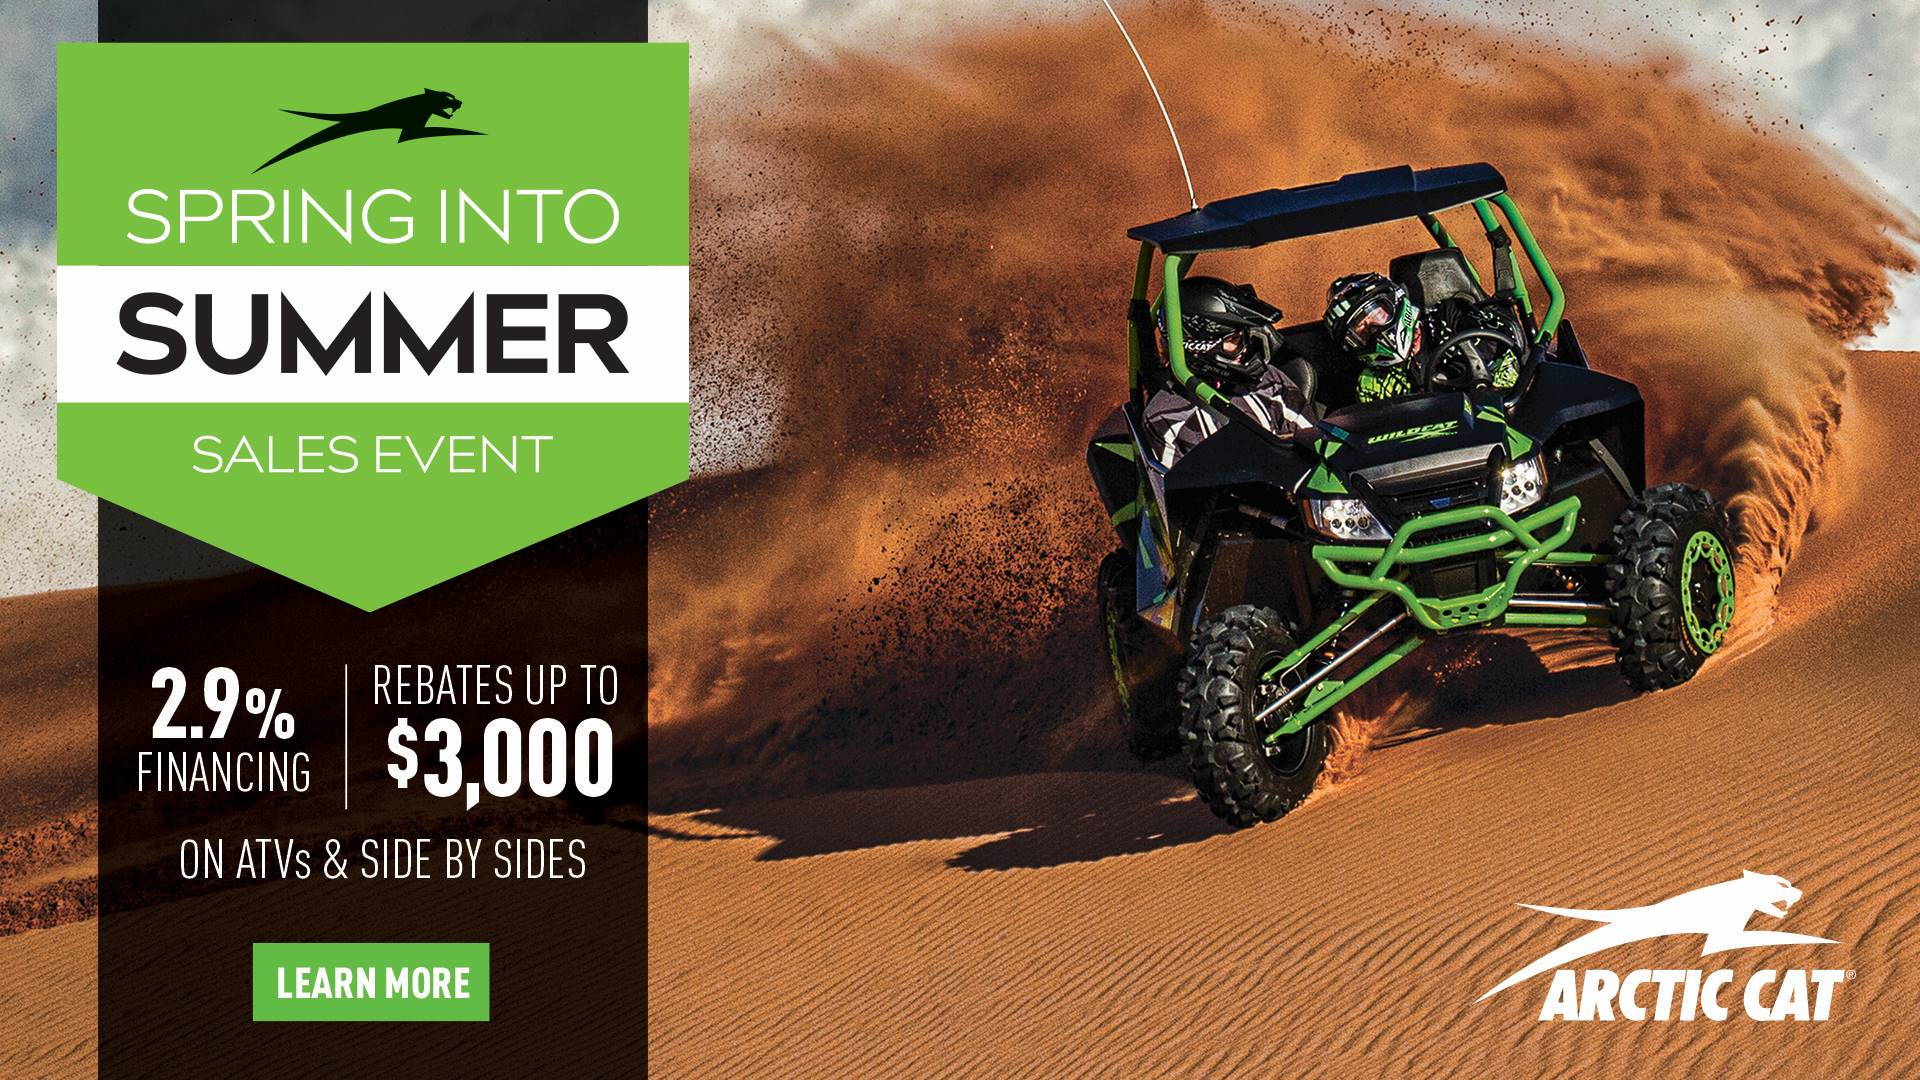 Arctic Cat - Spring Into Summer Sales Event - ATV Promotional Pricing - MY2016